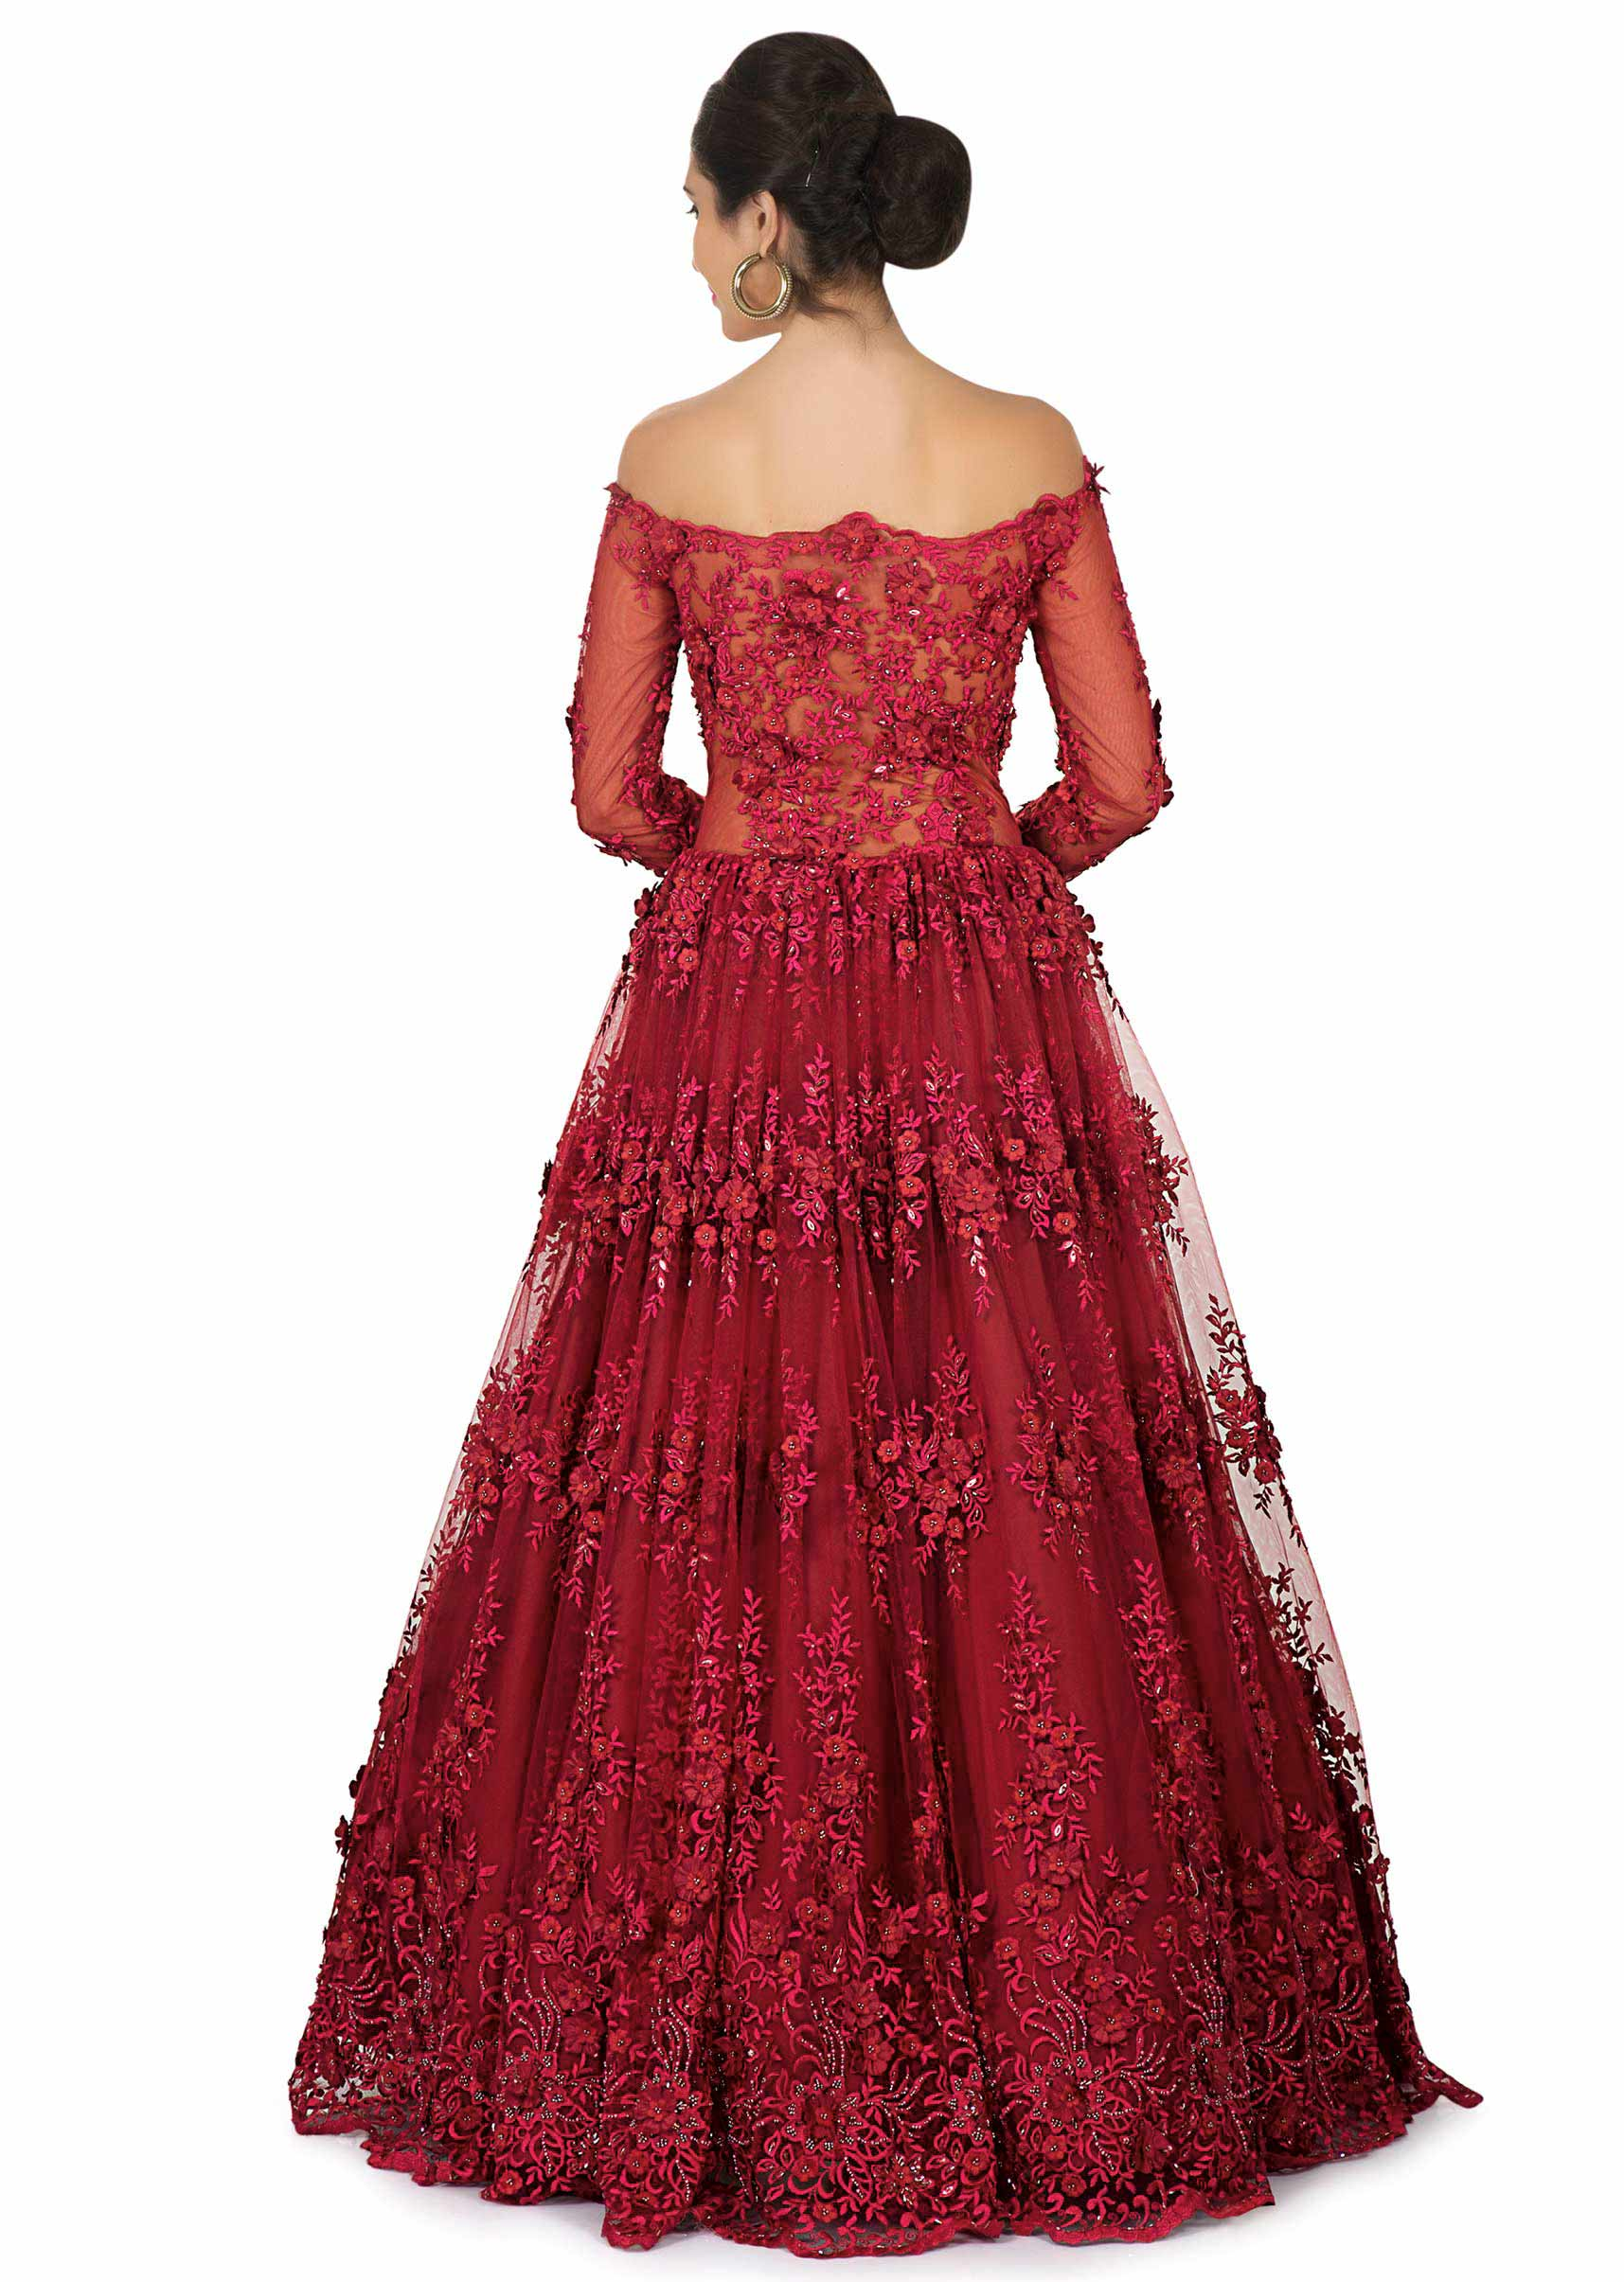 8478dd2a926 Shivangi Joshi in Kalki maroon off shoulder gown with embroidery